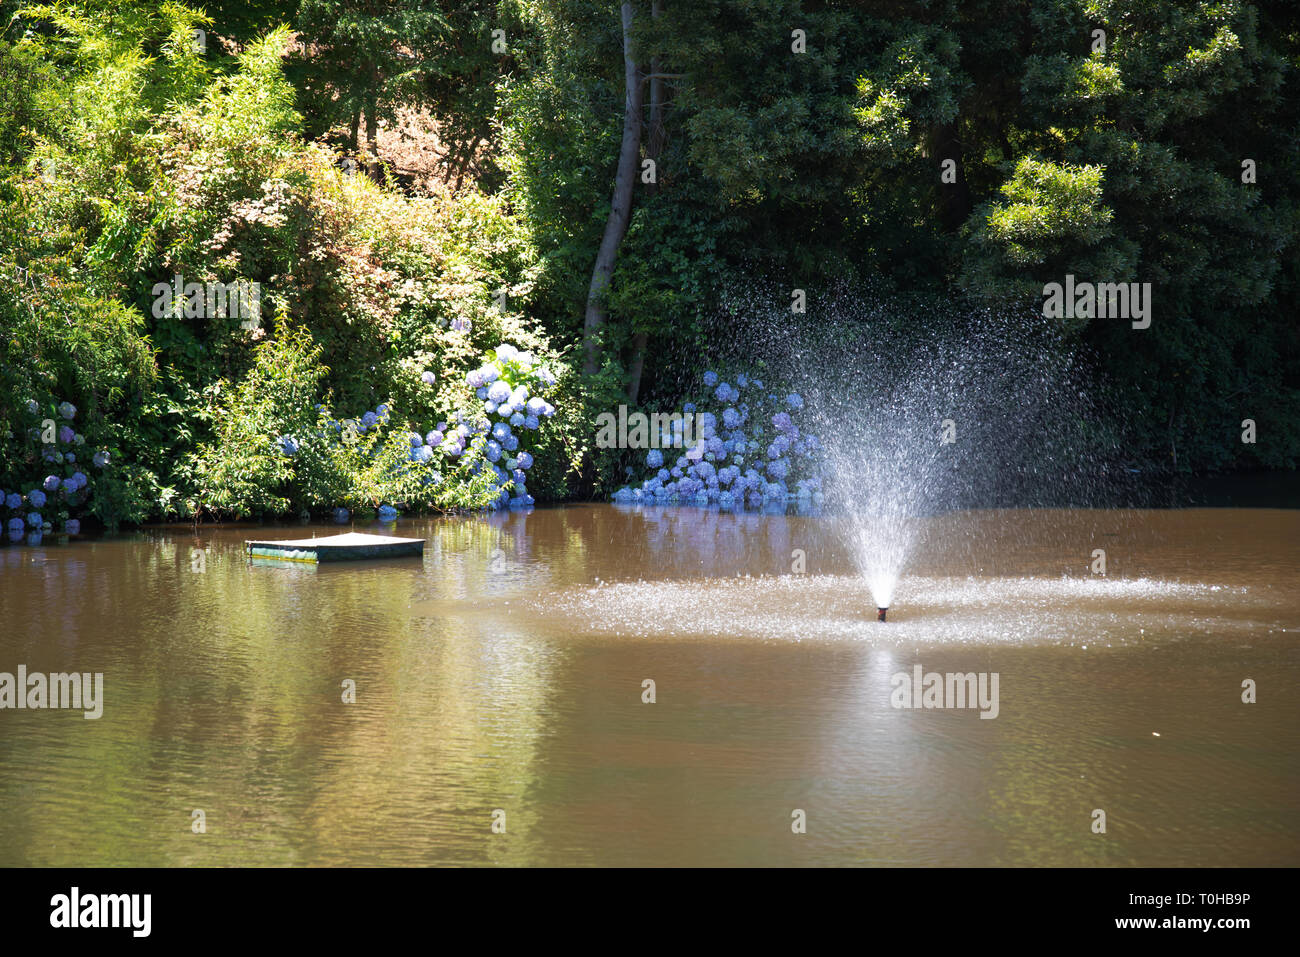 Entspannung am Weiher - Stock Image